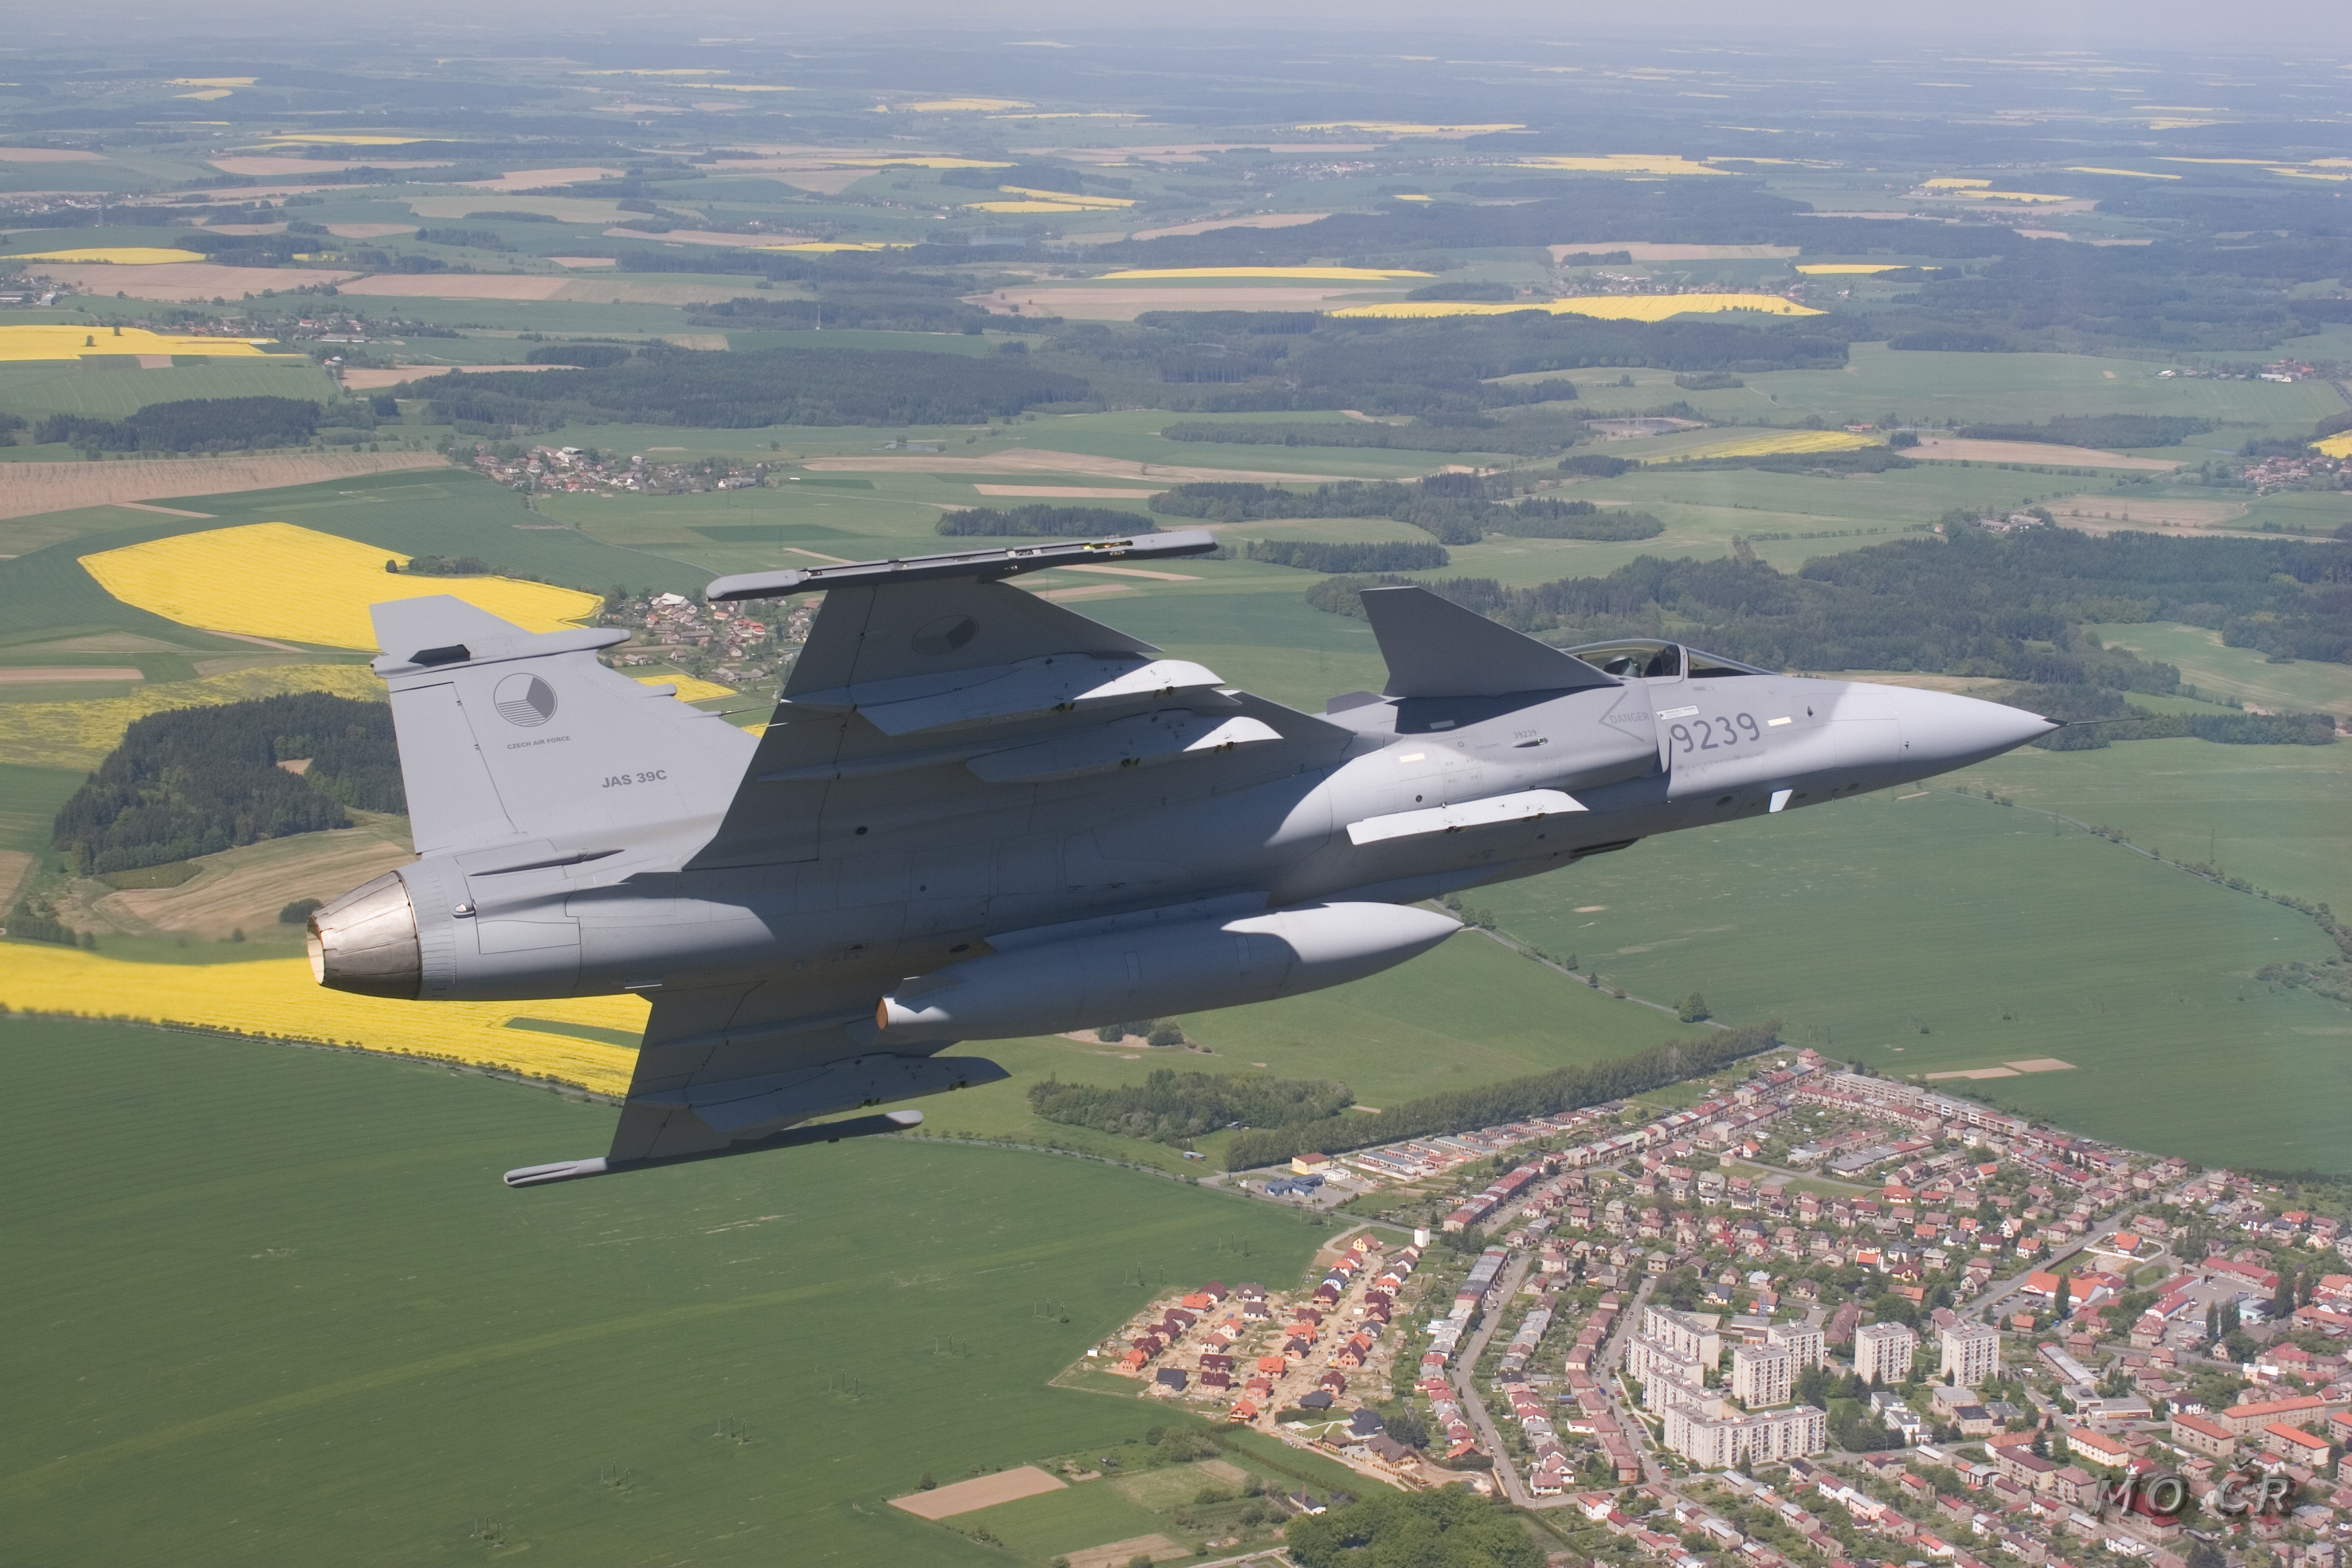 Grey jet aircraft banking right over rural area with residential housing. The background is mostly green with yellow areas.